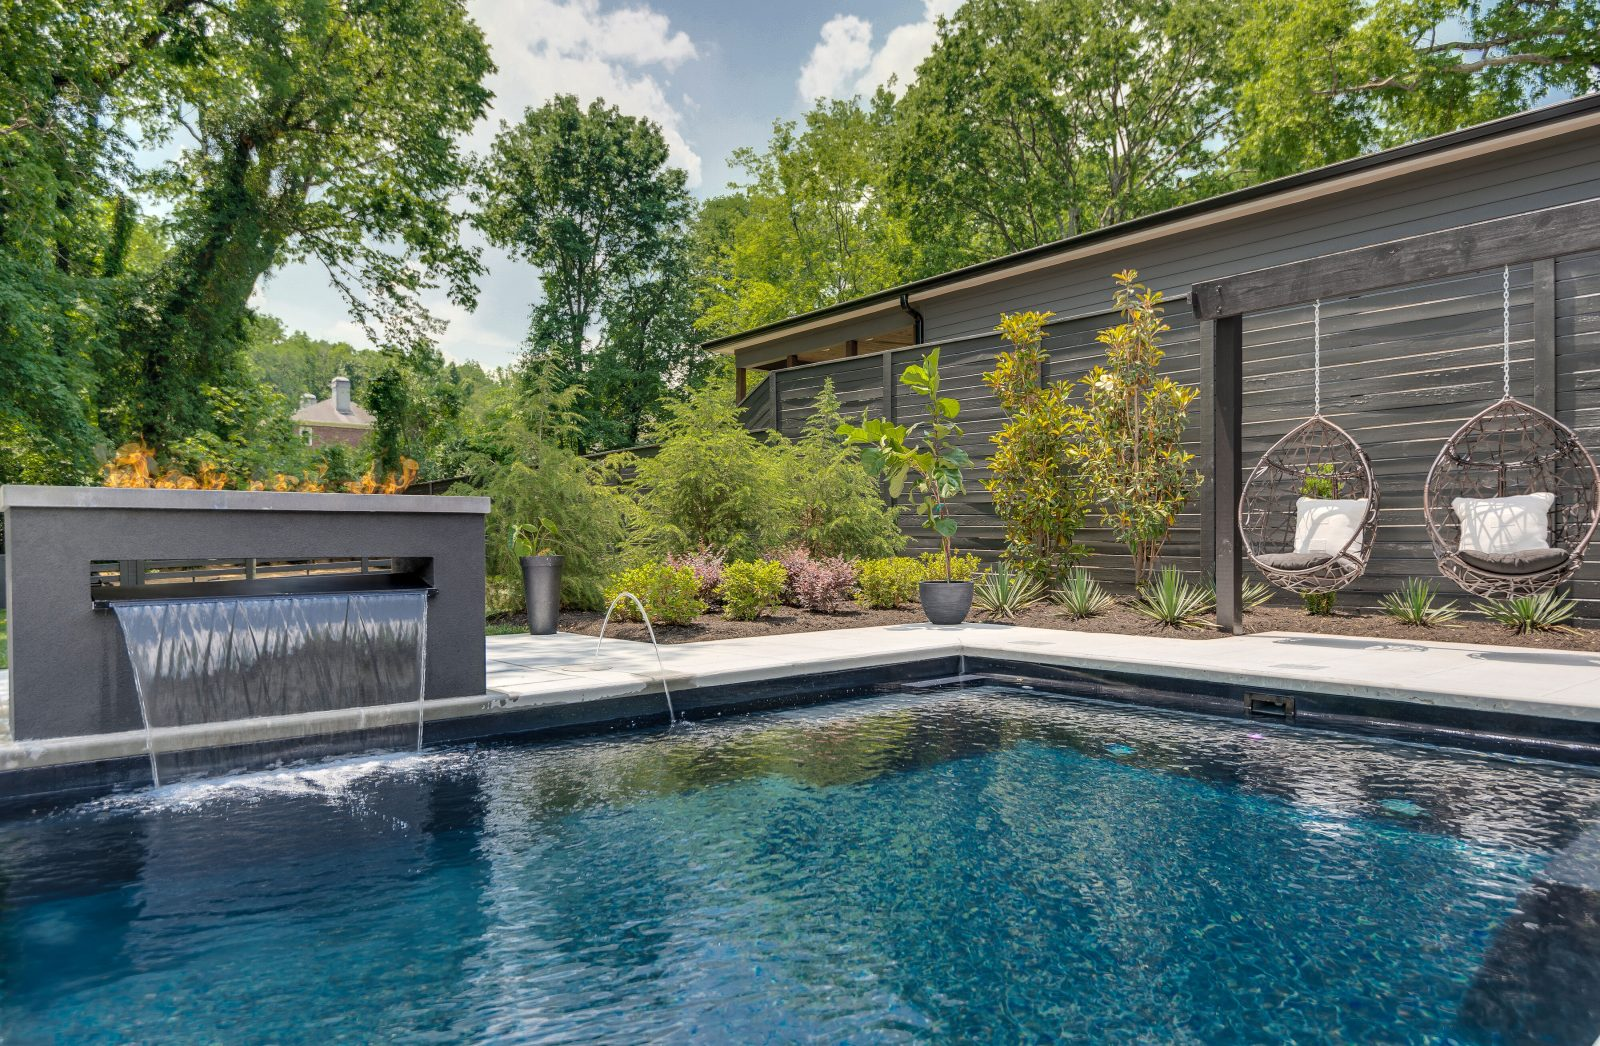 Angle of backyard pool, showing a small waterfall fountain into the pool, and two hanging pod chairs off to the right side.